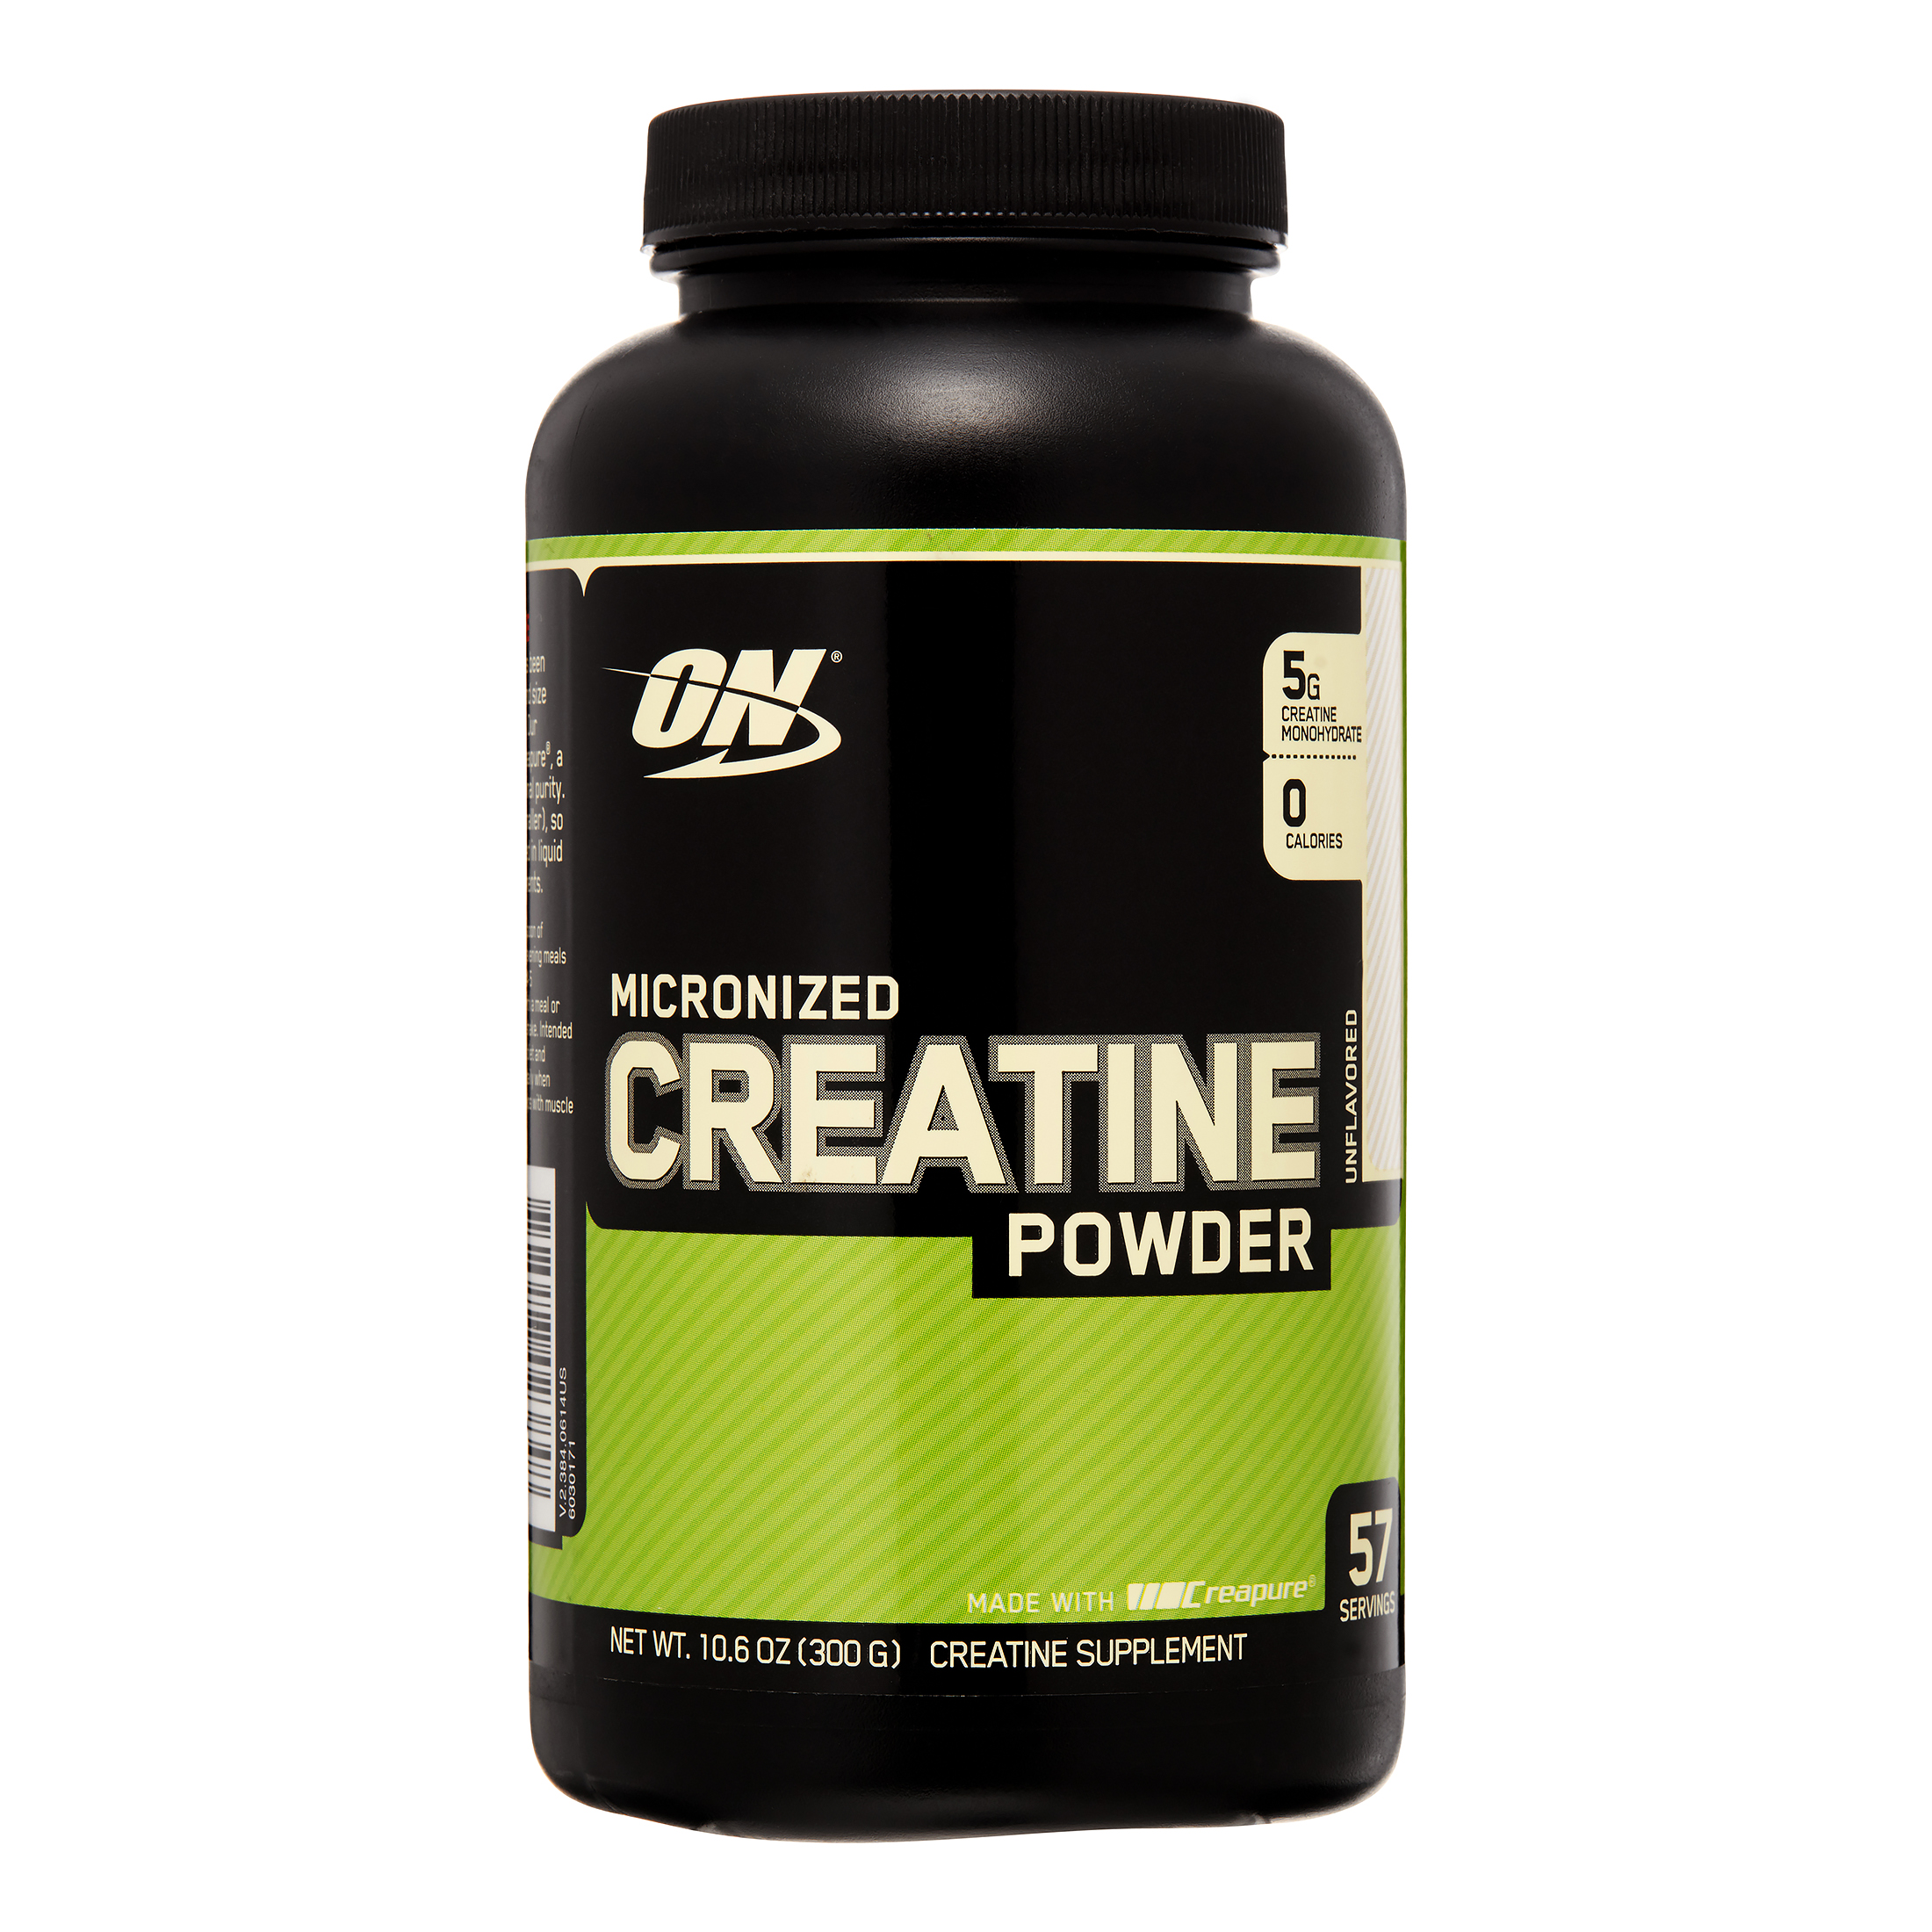 Optimum Nutrition Micronized Creatine Powder, 57 Servings